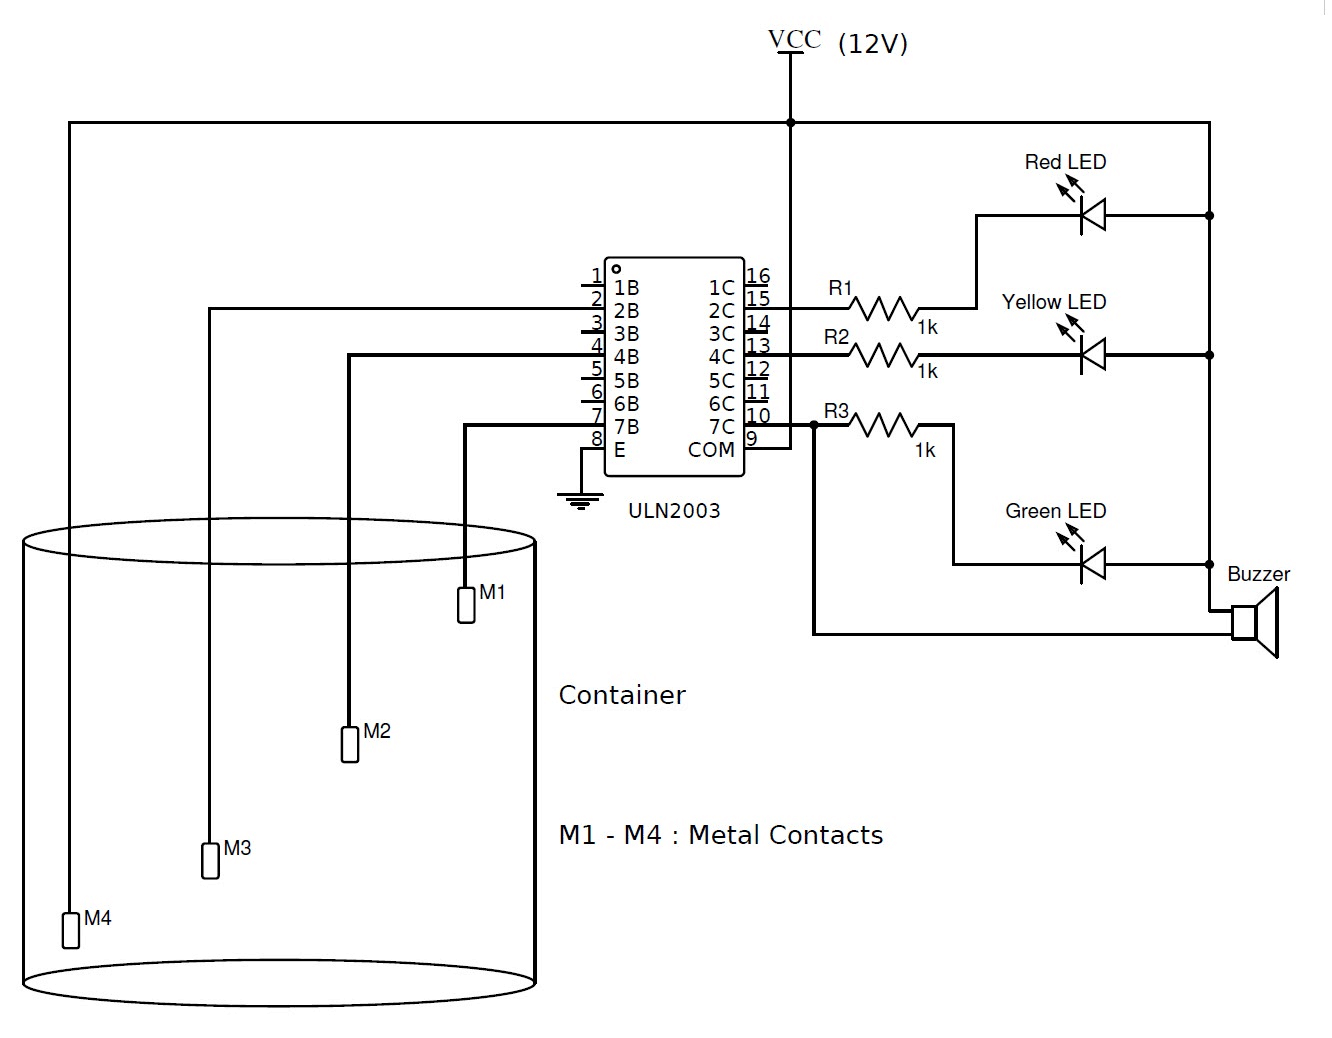 medium resolution of simple water level indicator with alarm 3 tested circuits in 2019 water level sensor detector monitor with alarm circuit schematic